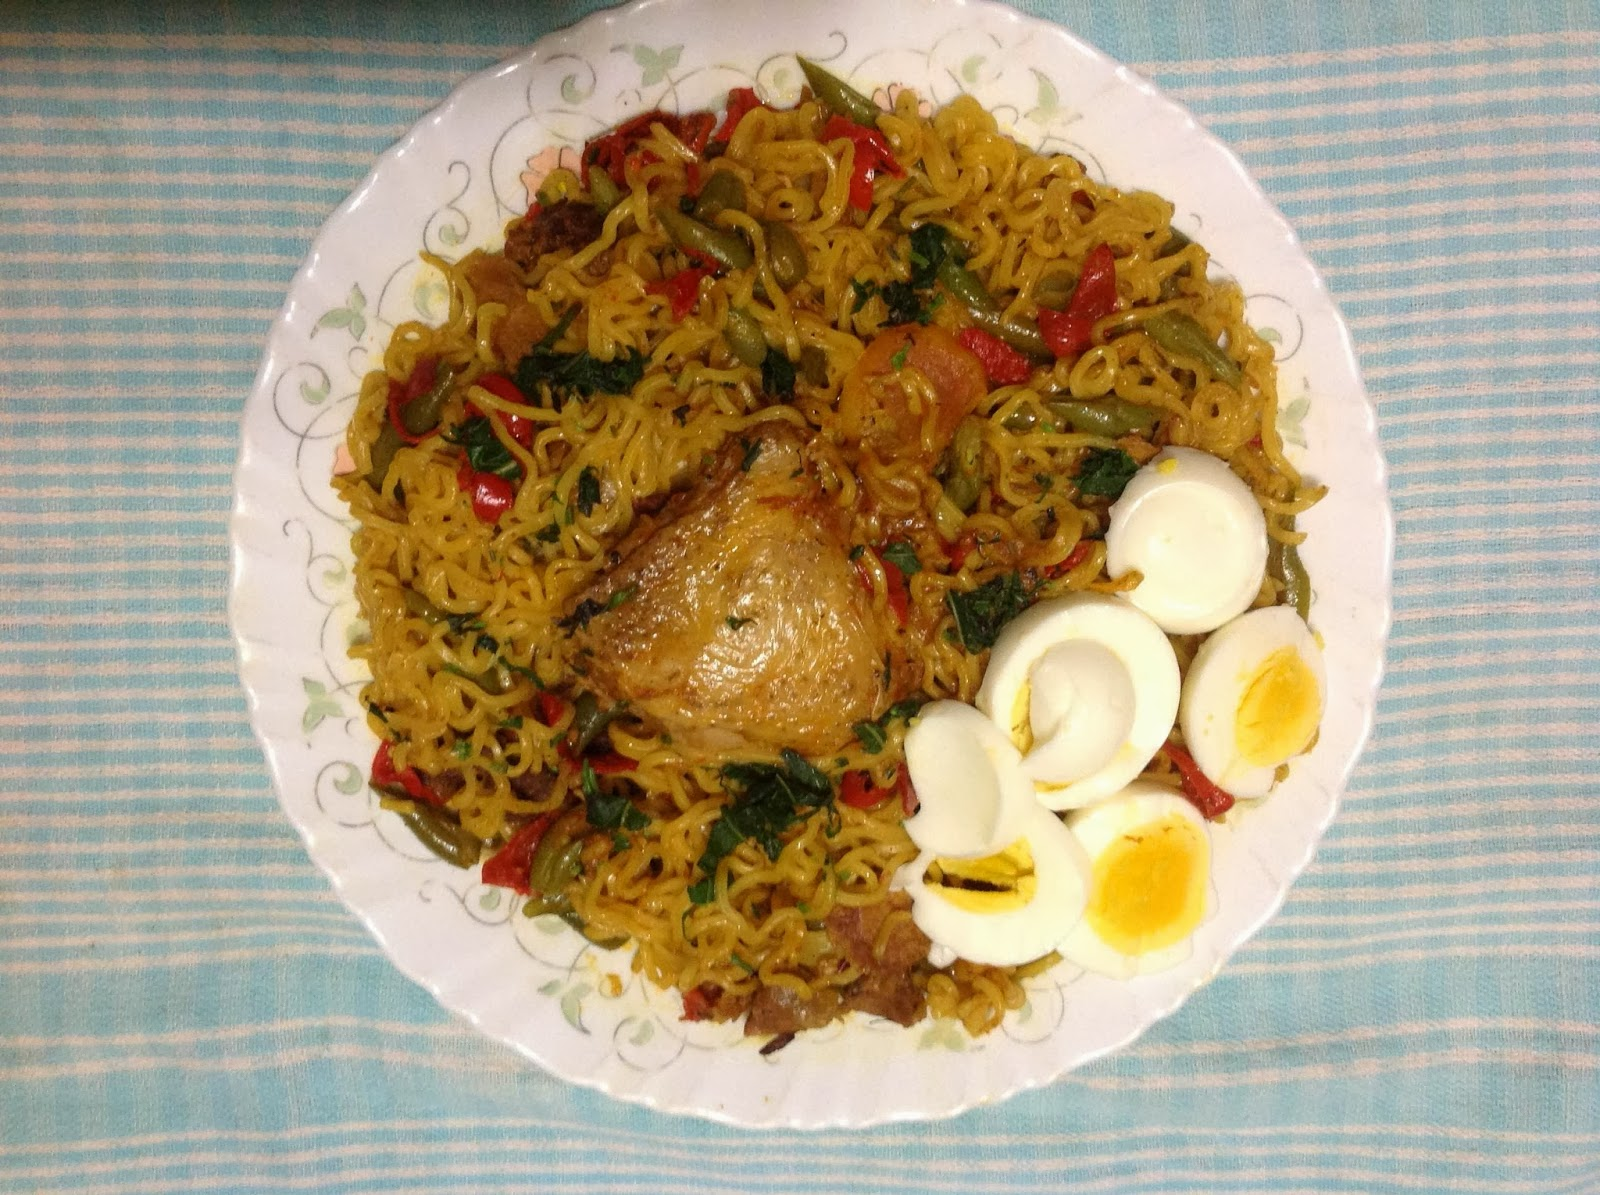 Dobbys signature nigerian food blog i nigerian food recipes i nigerian lunch meal ideas by dobbys signature readers pictures forumfinder Choice Image